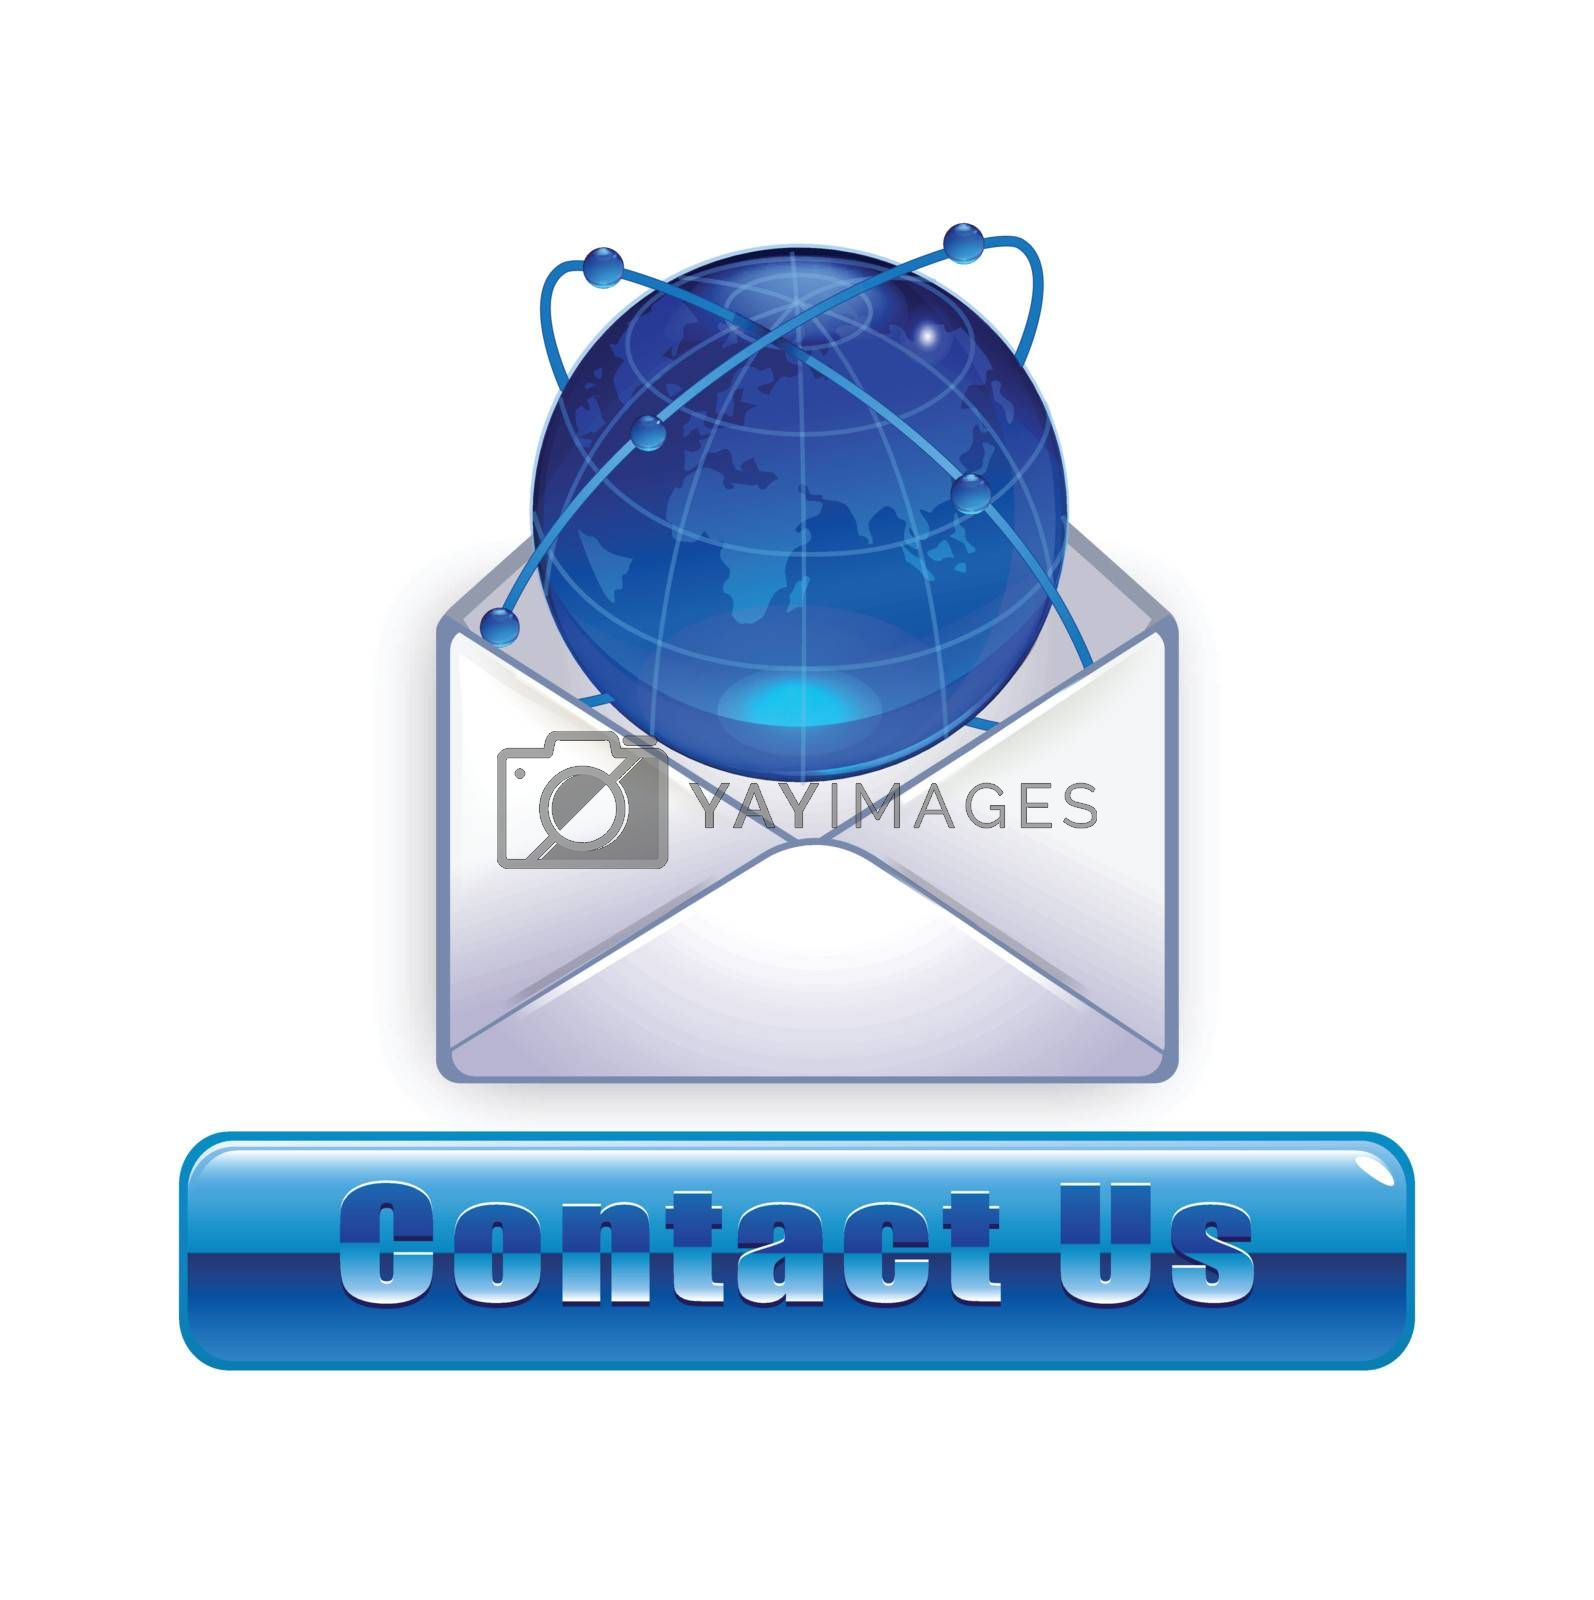 E-mail icon envelope and glass globe